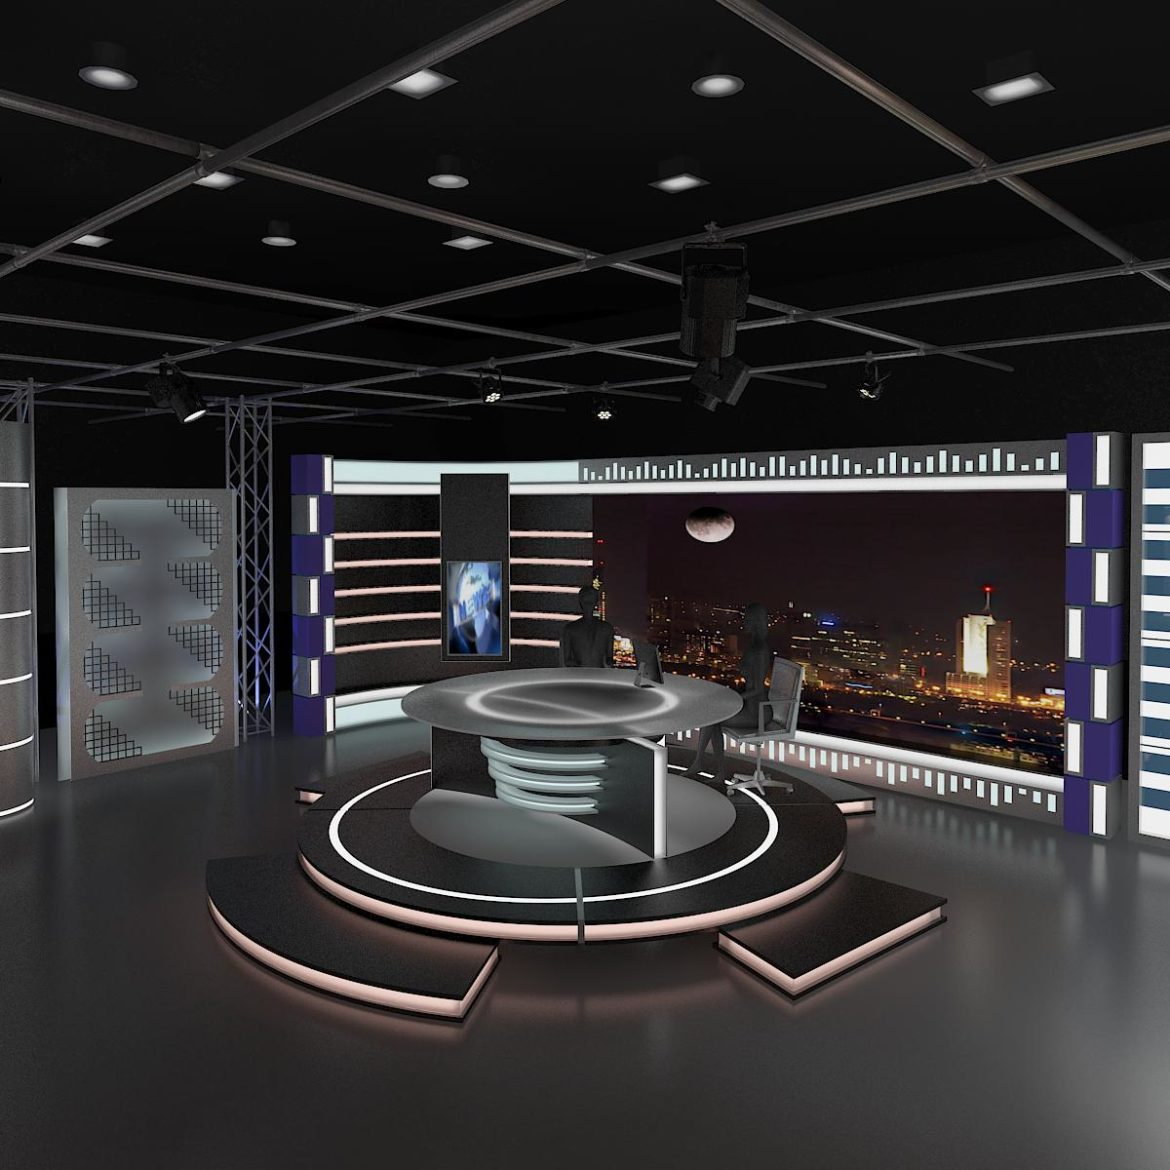 virtual tv studio news set 6 3d model 3ds c4d dxf fbx max obj 305592